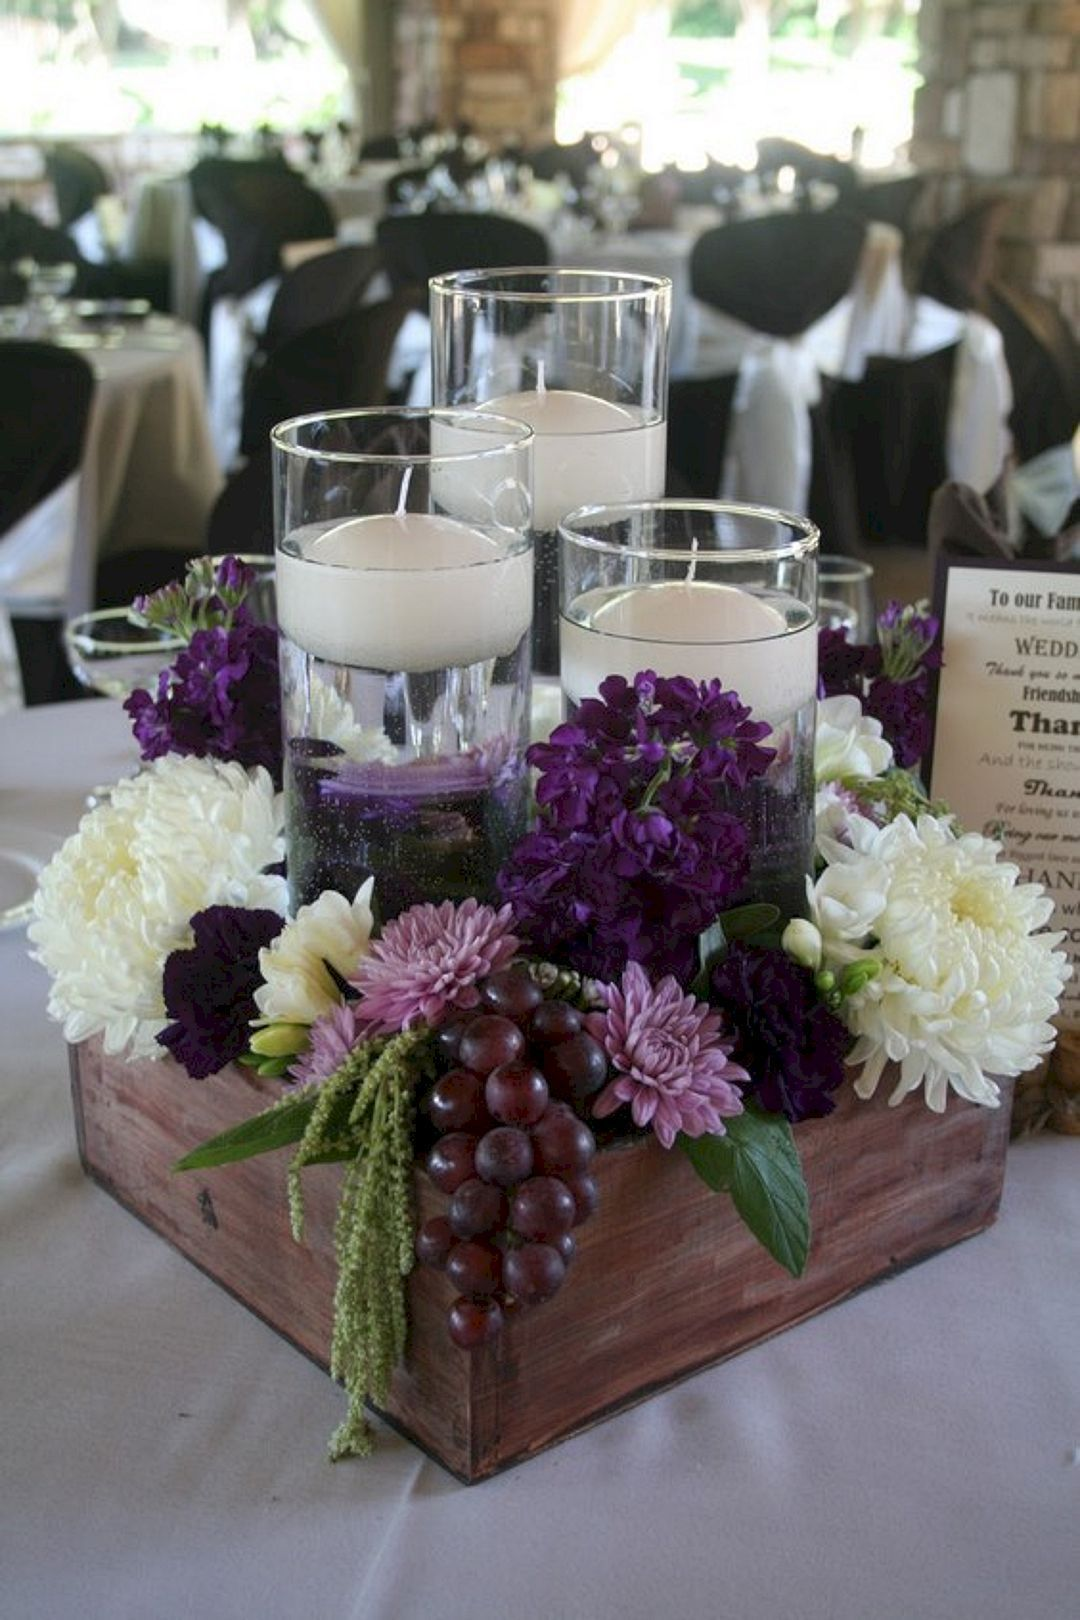 diy creative rustic chic wedding centerpieces ideas rustic chic